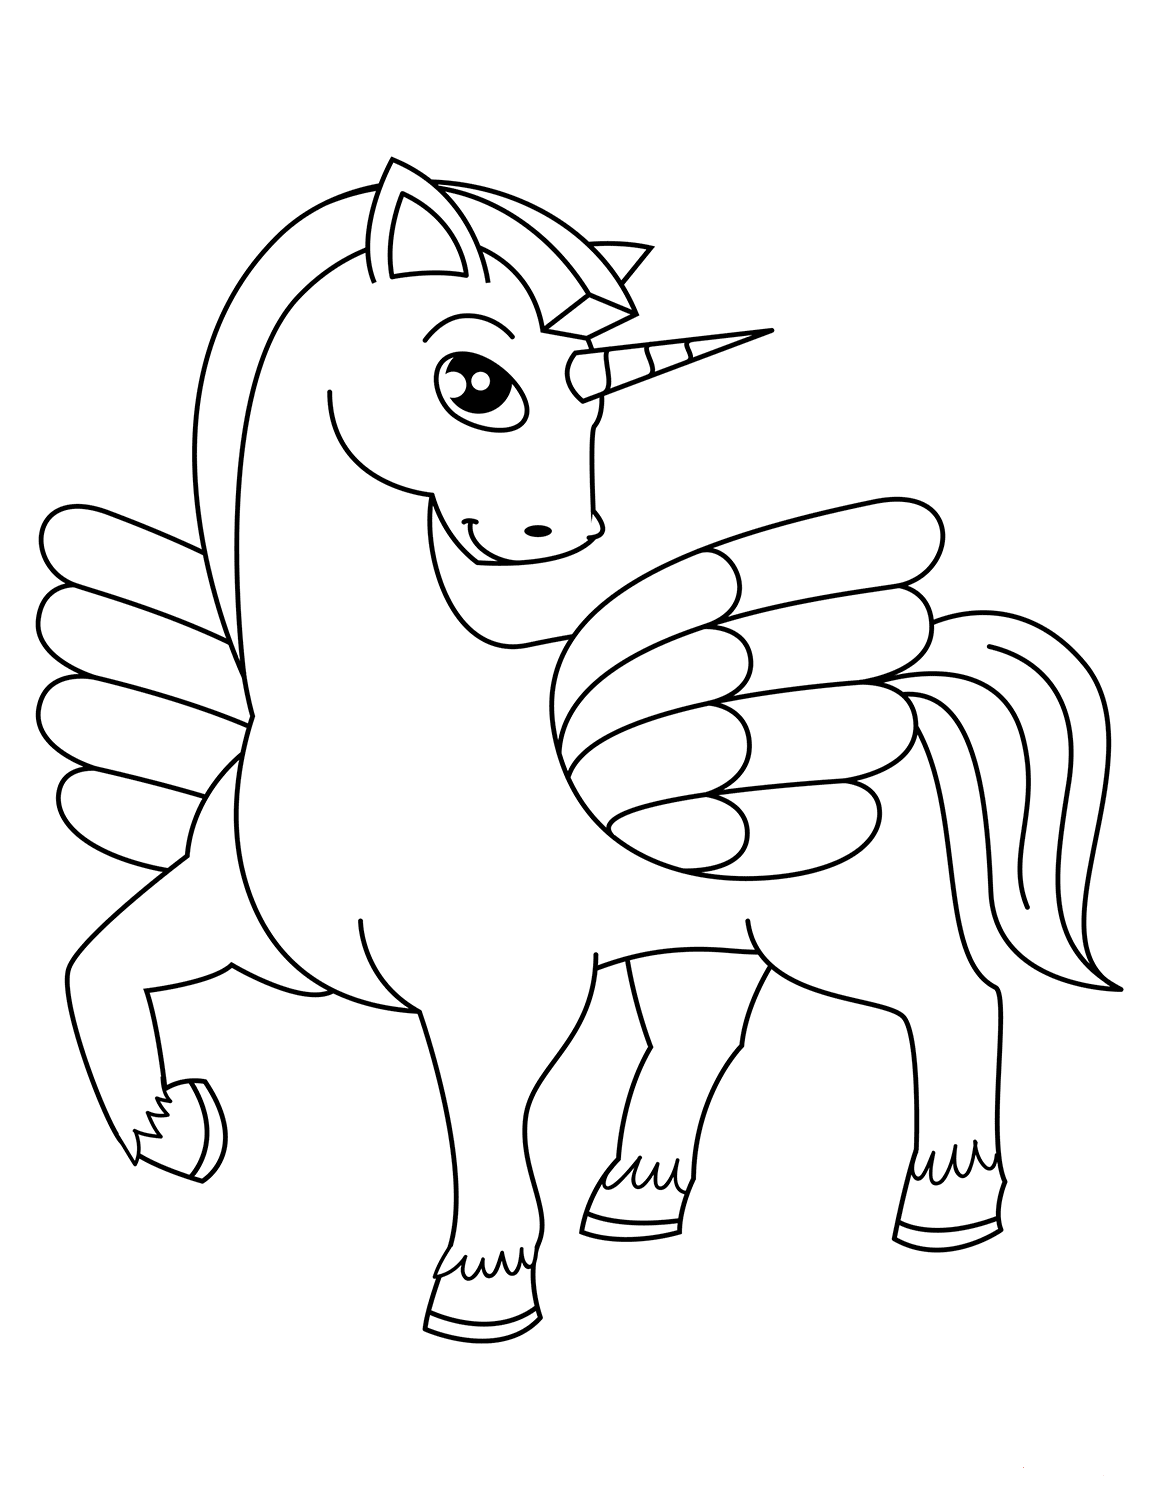 unicorn coloring worksheets unicorn coloring pages to download and print for free coloring unicorn worksheets